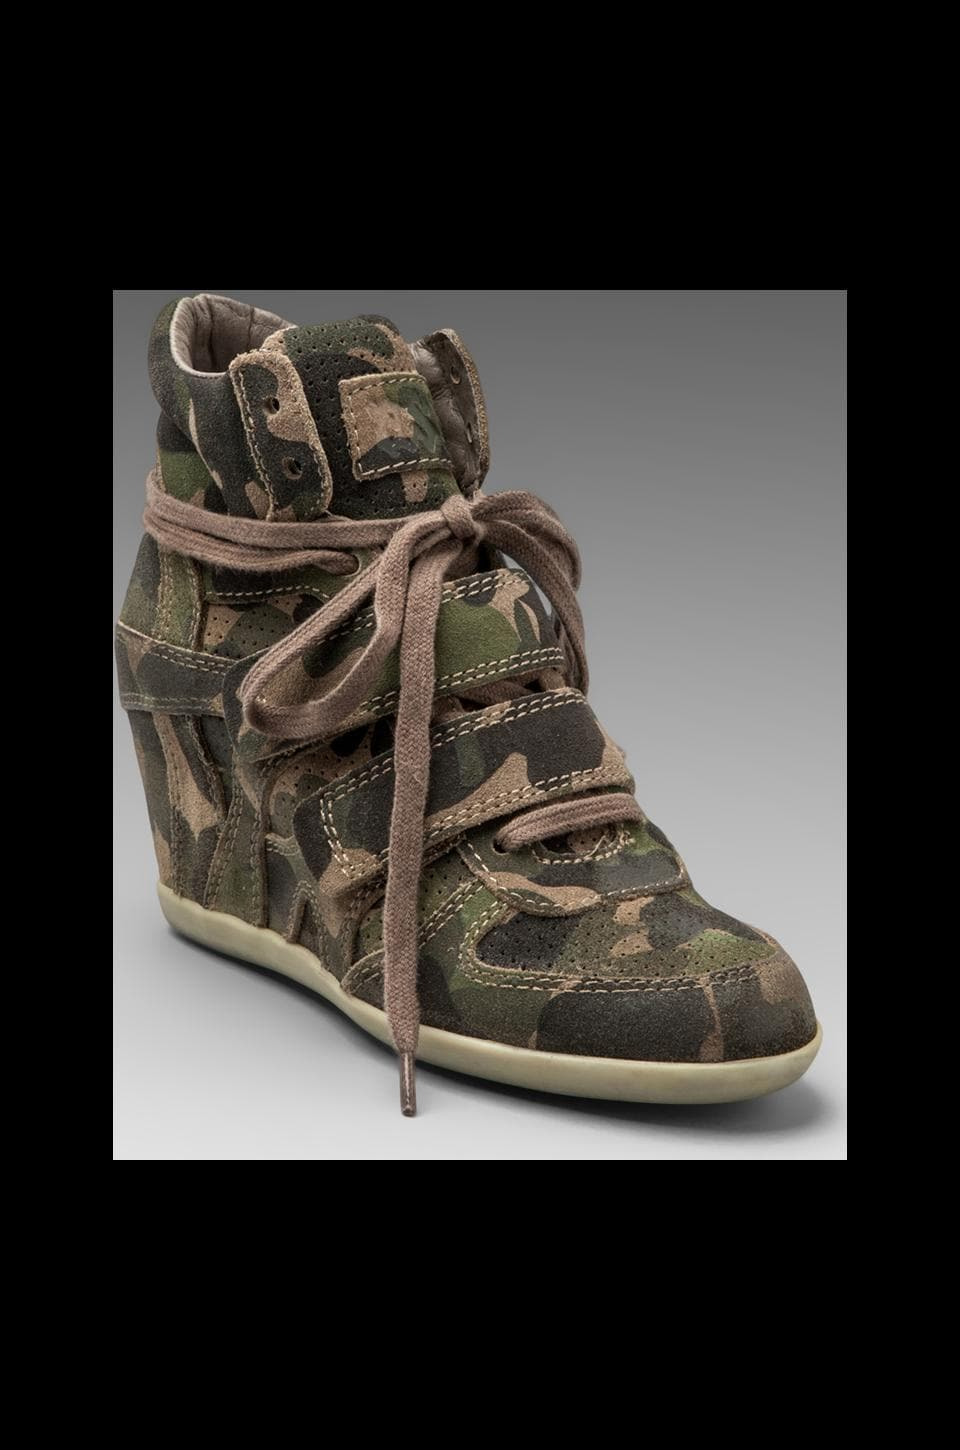 Ash Bea Wedge Sneaker in Military/Topo